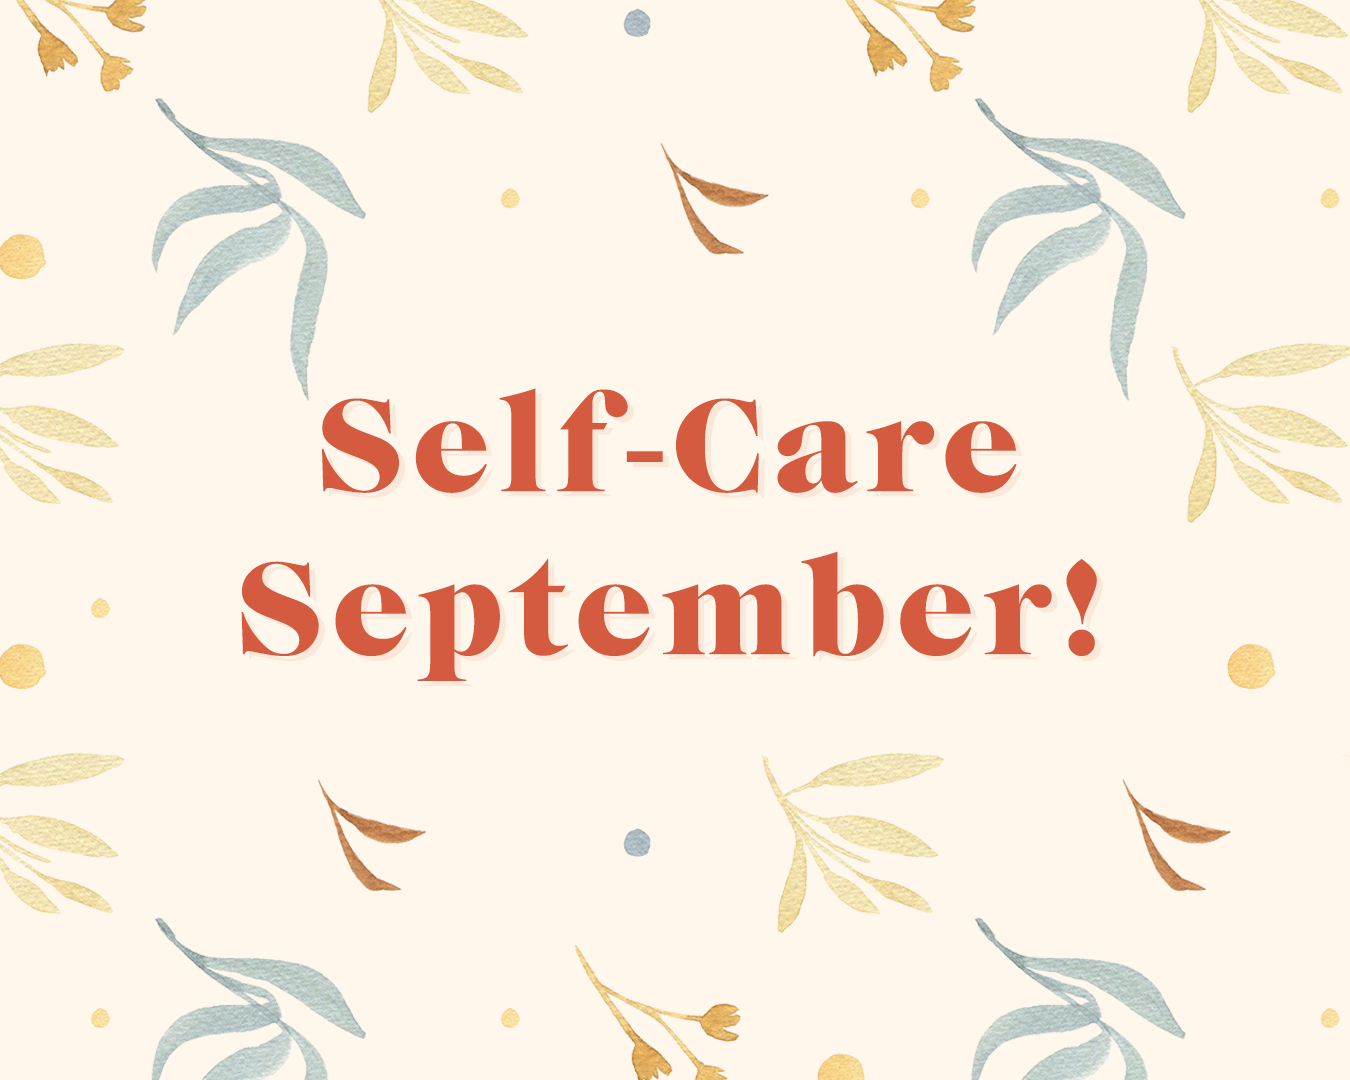 Self-Care September!